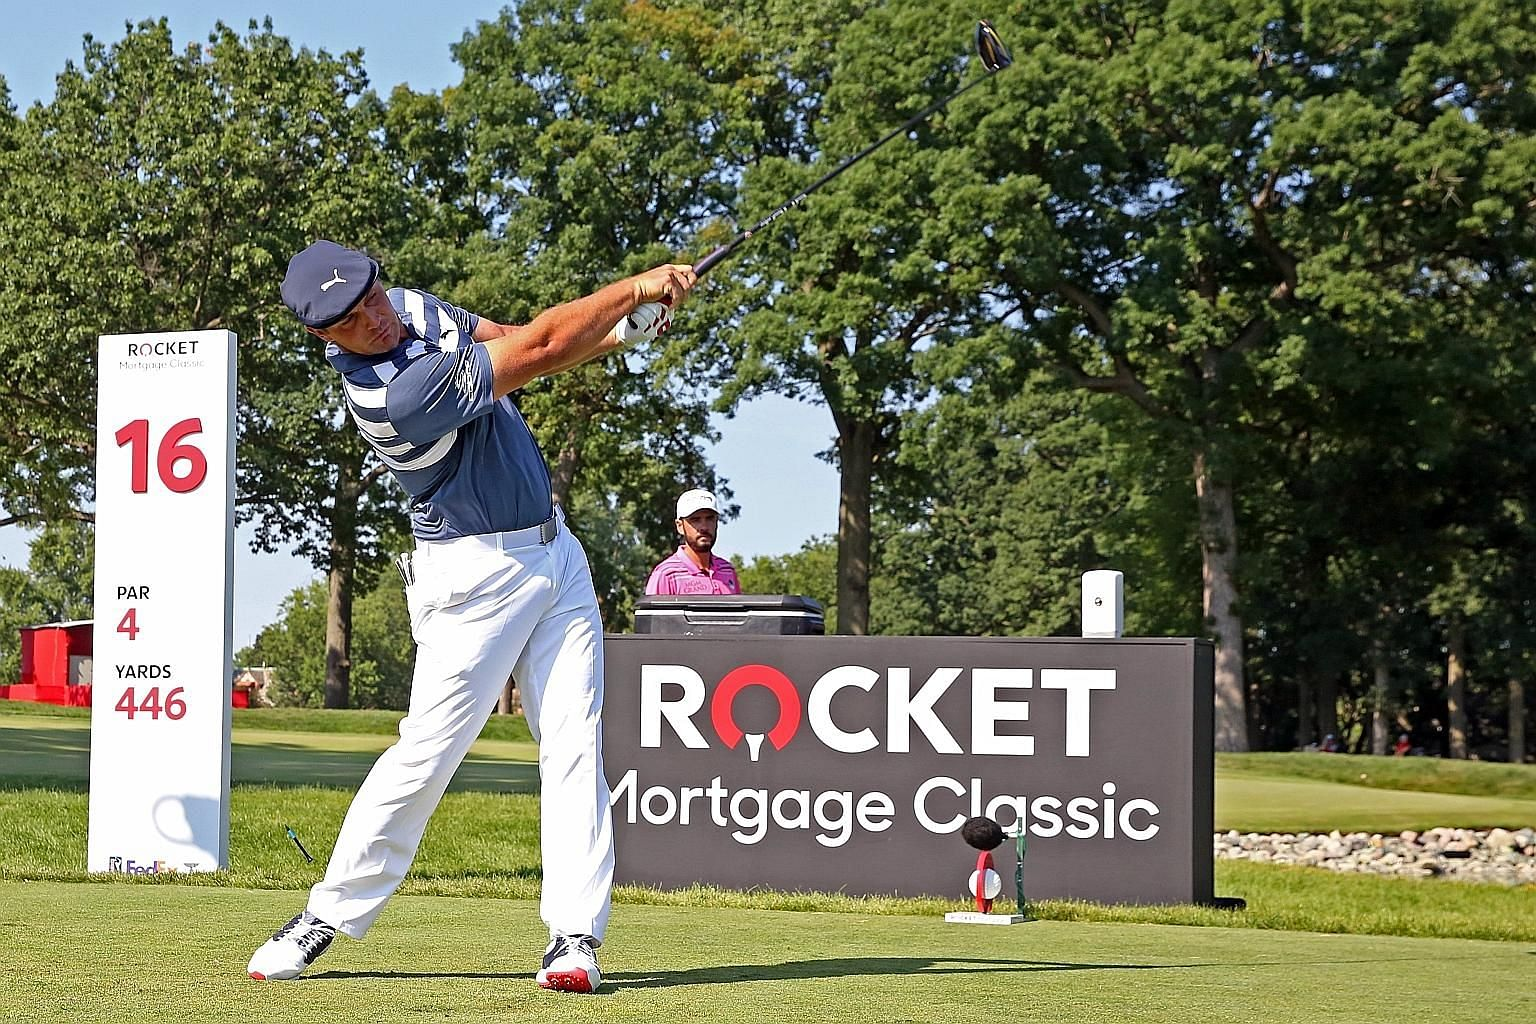 Bryson DeChambeau, who piled on 9kg during the tour's halt, hitting his tee shot on the 16th hole in the final round of the Rocket Mortgage Classic at the Detroit Golf Club. His longest drive this year is 428 yards.